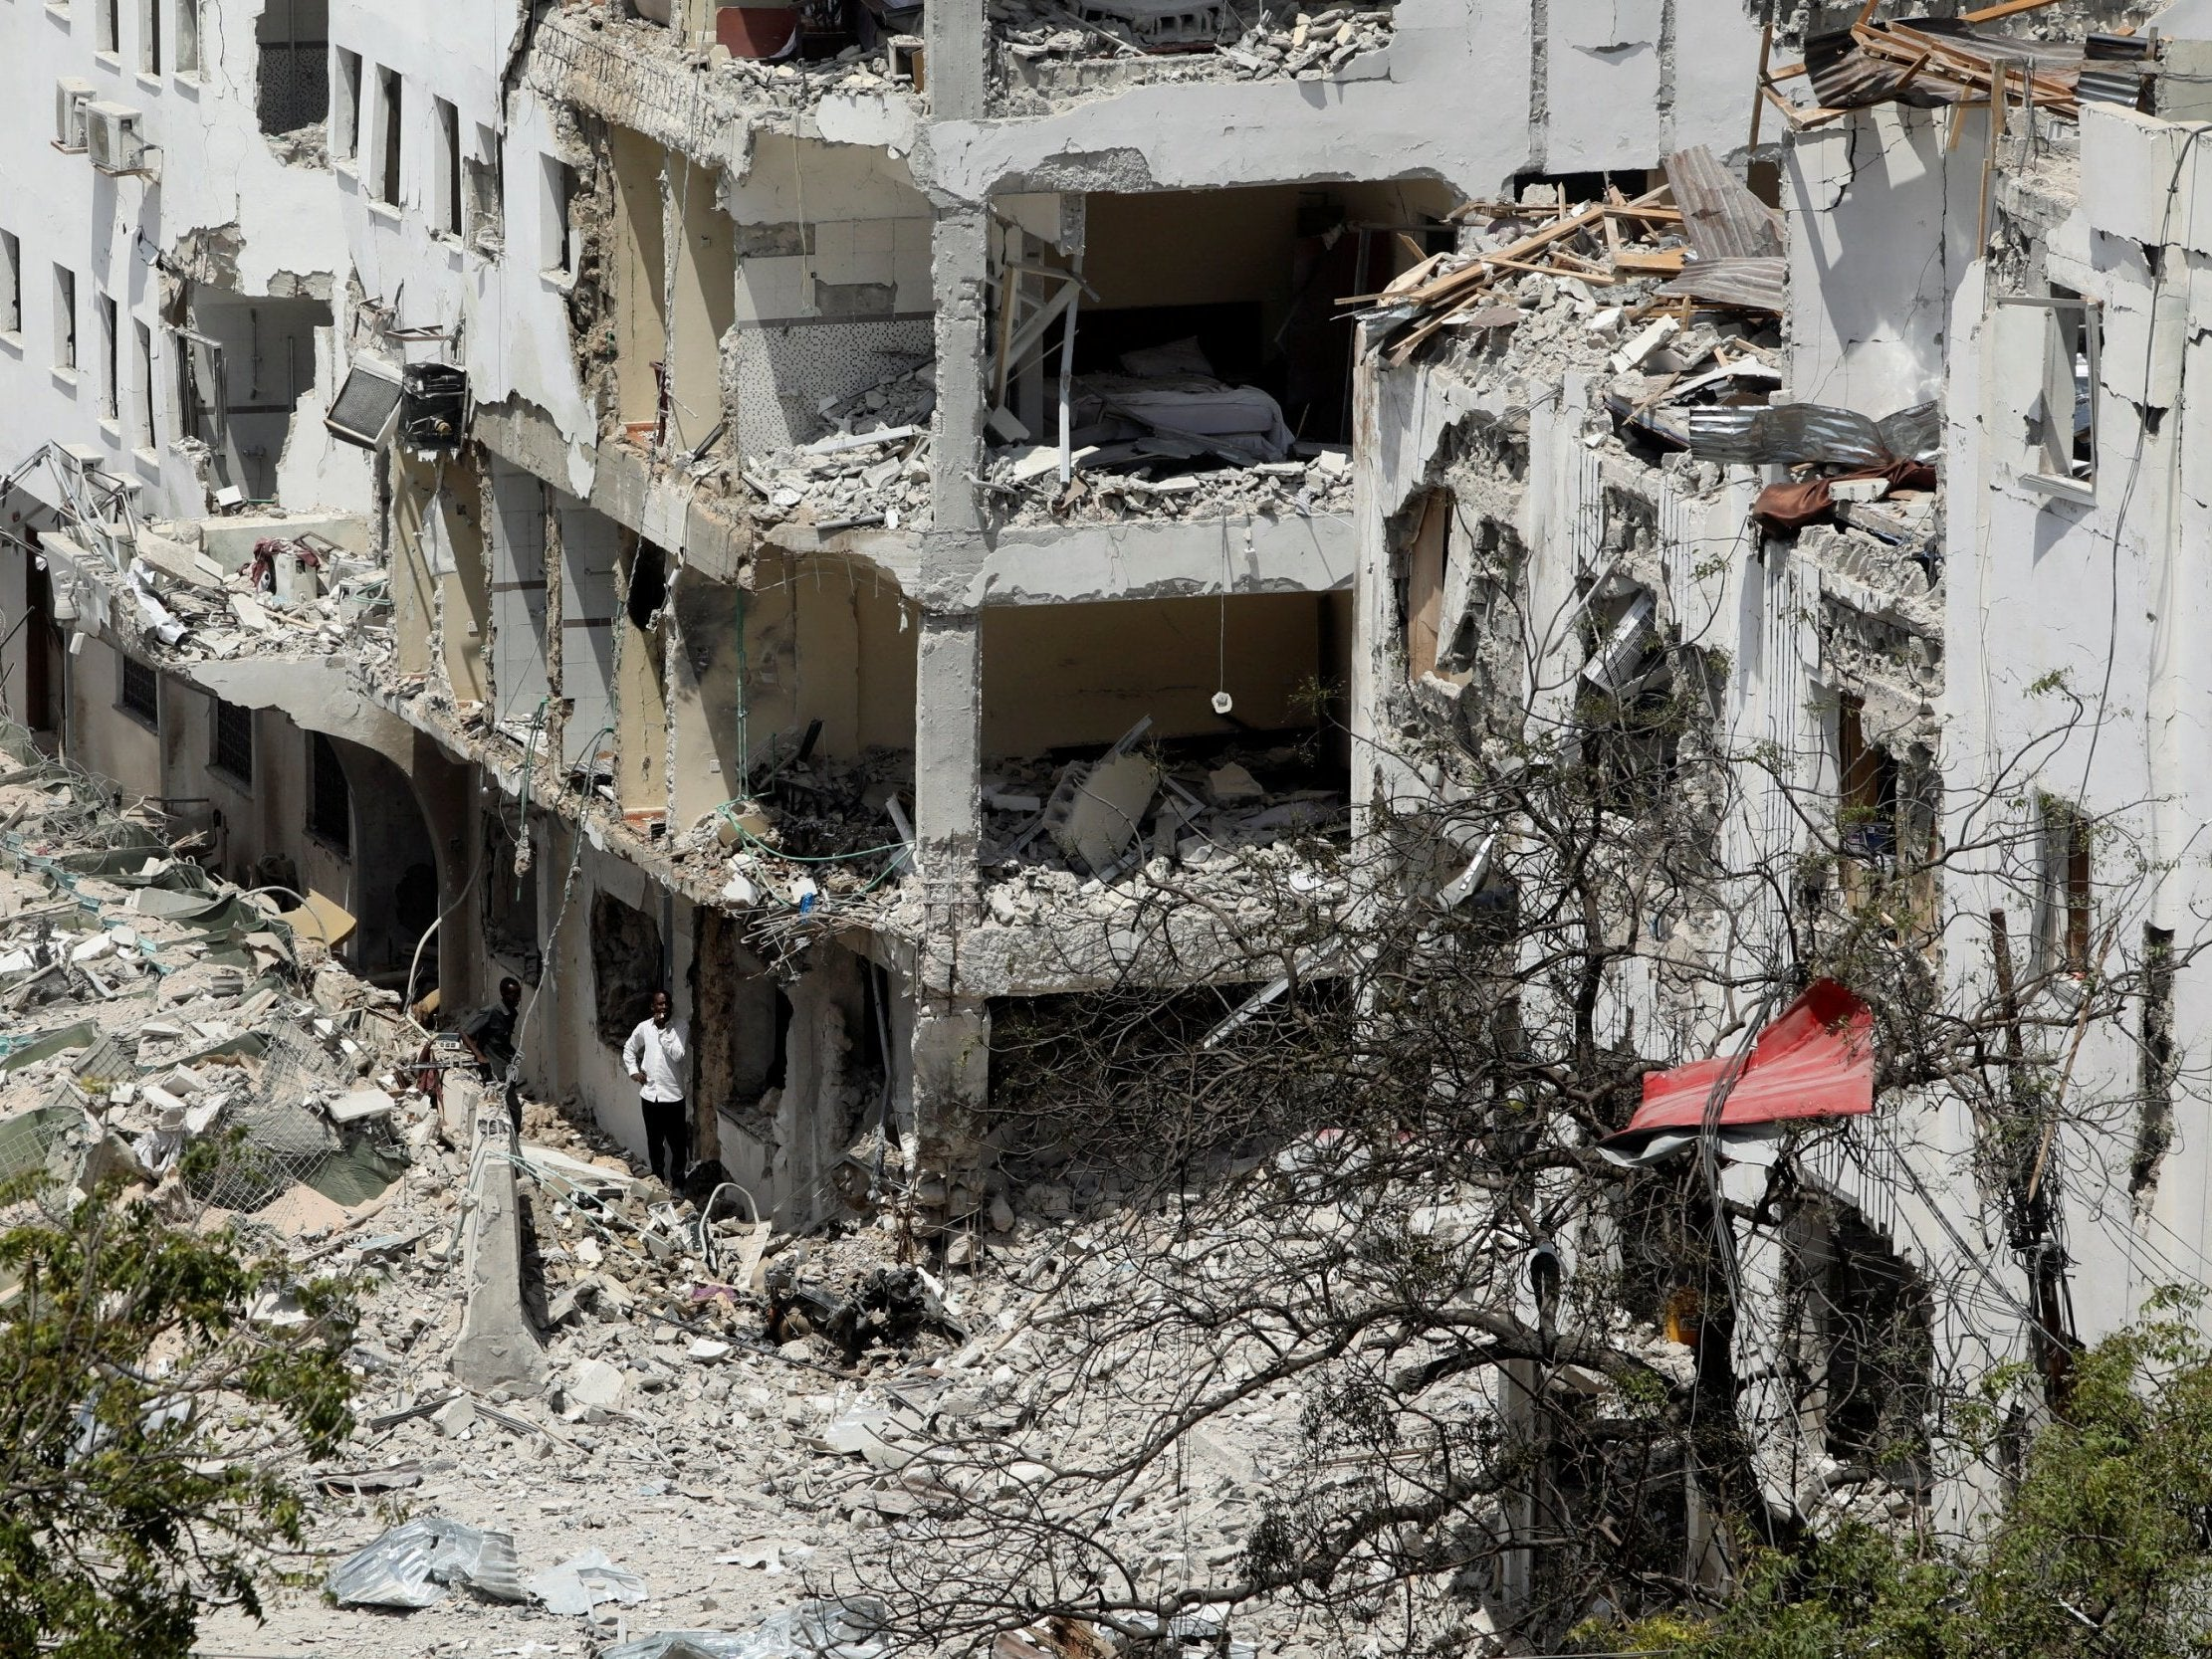 Mogadishu - latest news, breaking stories and comment - The Independent